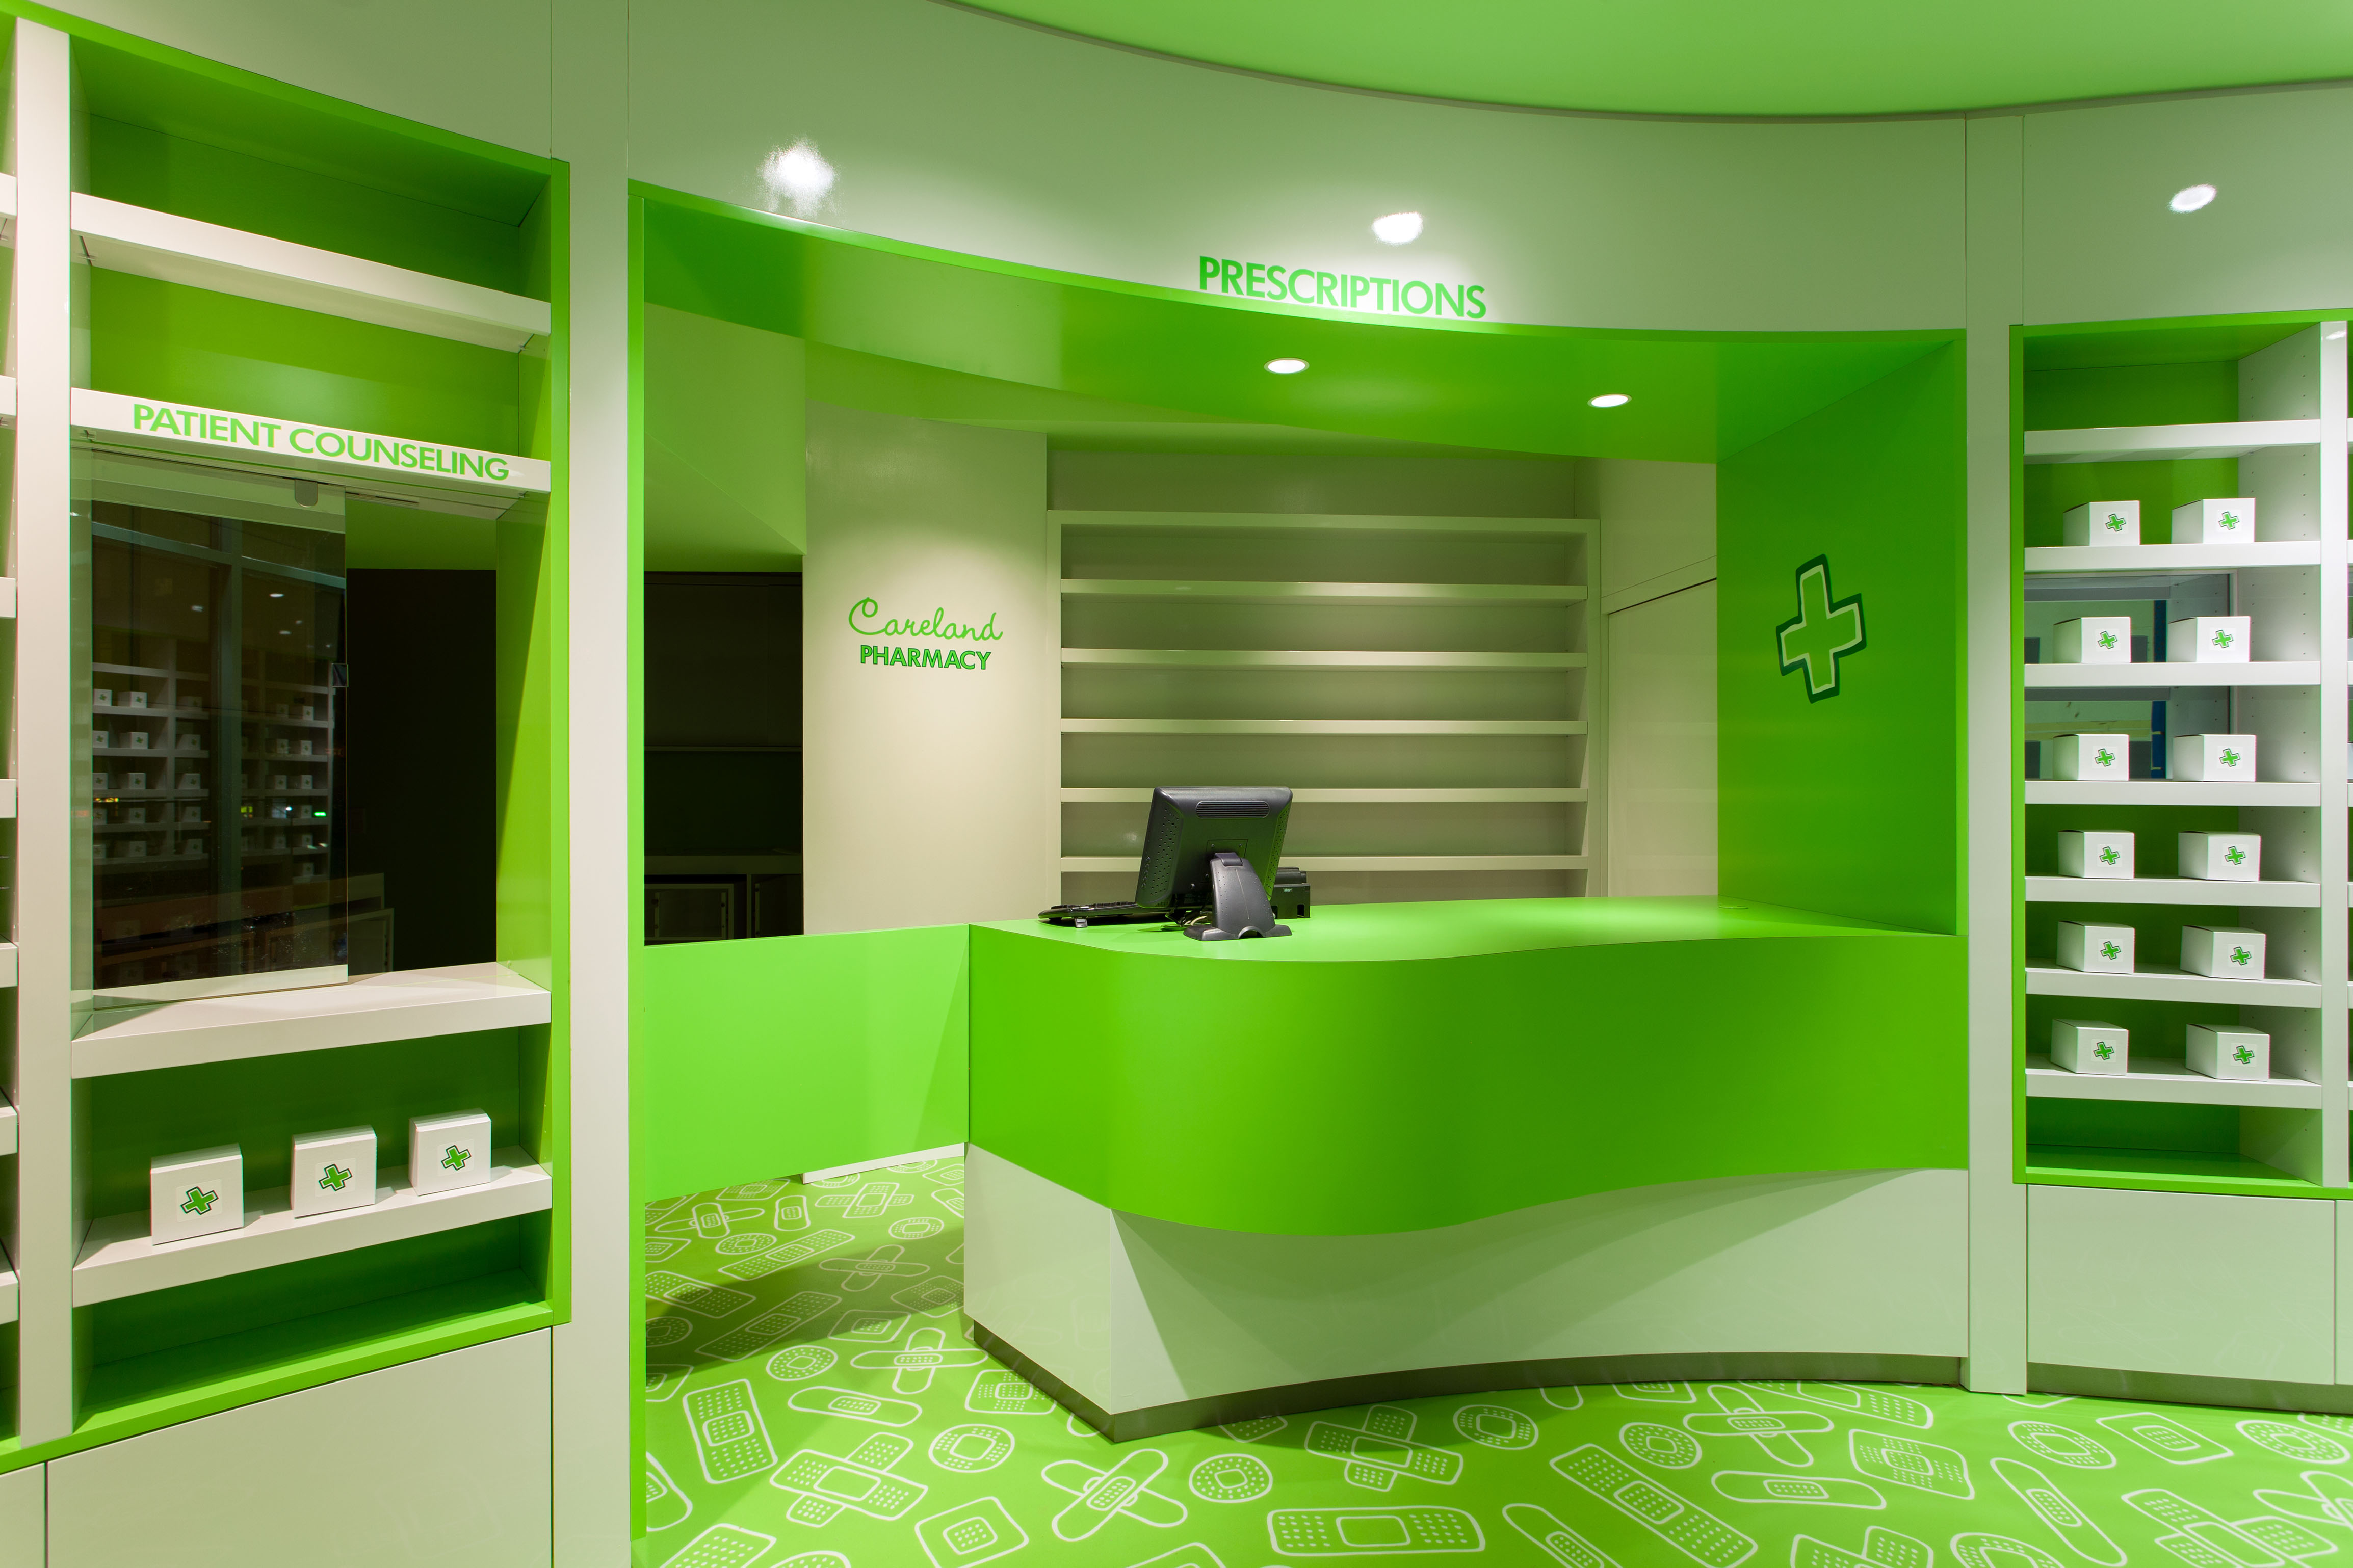 Pharmacy Design Ideas pharmacy design pharmacies us Careland Pharmacy